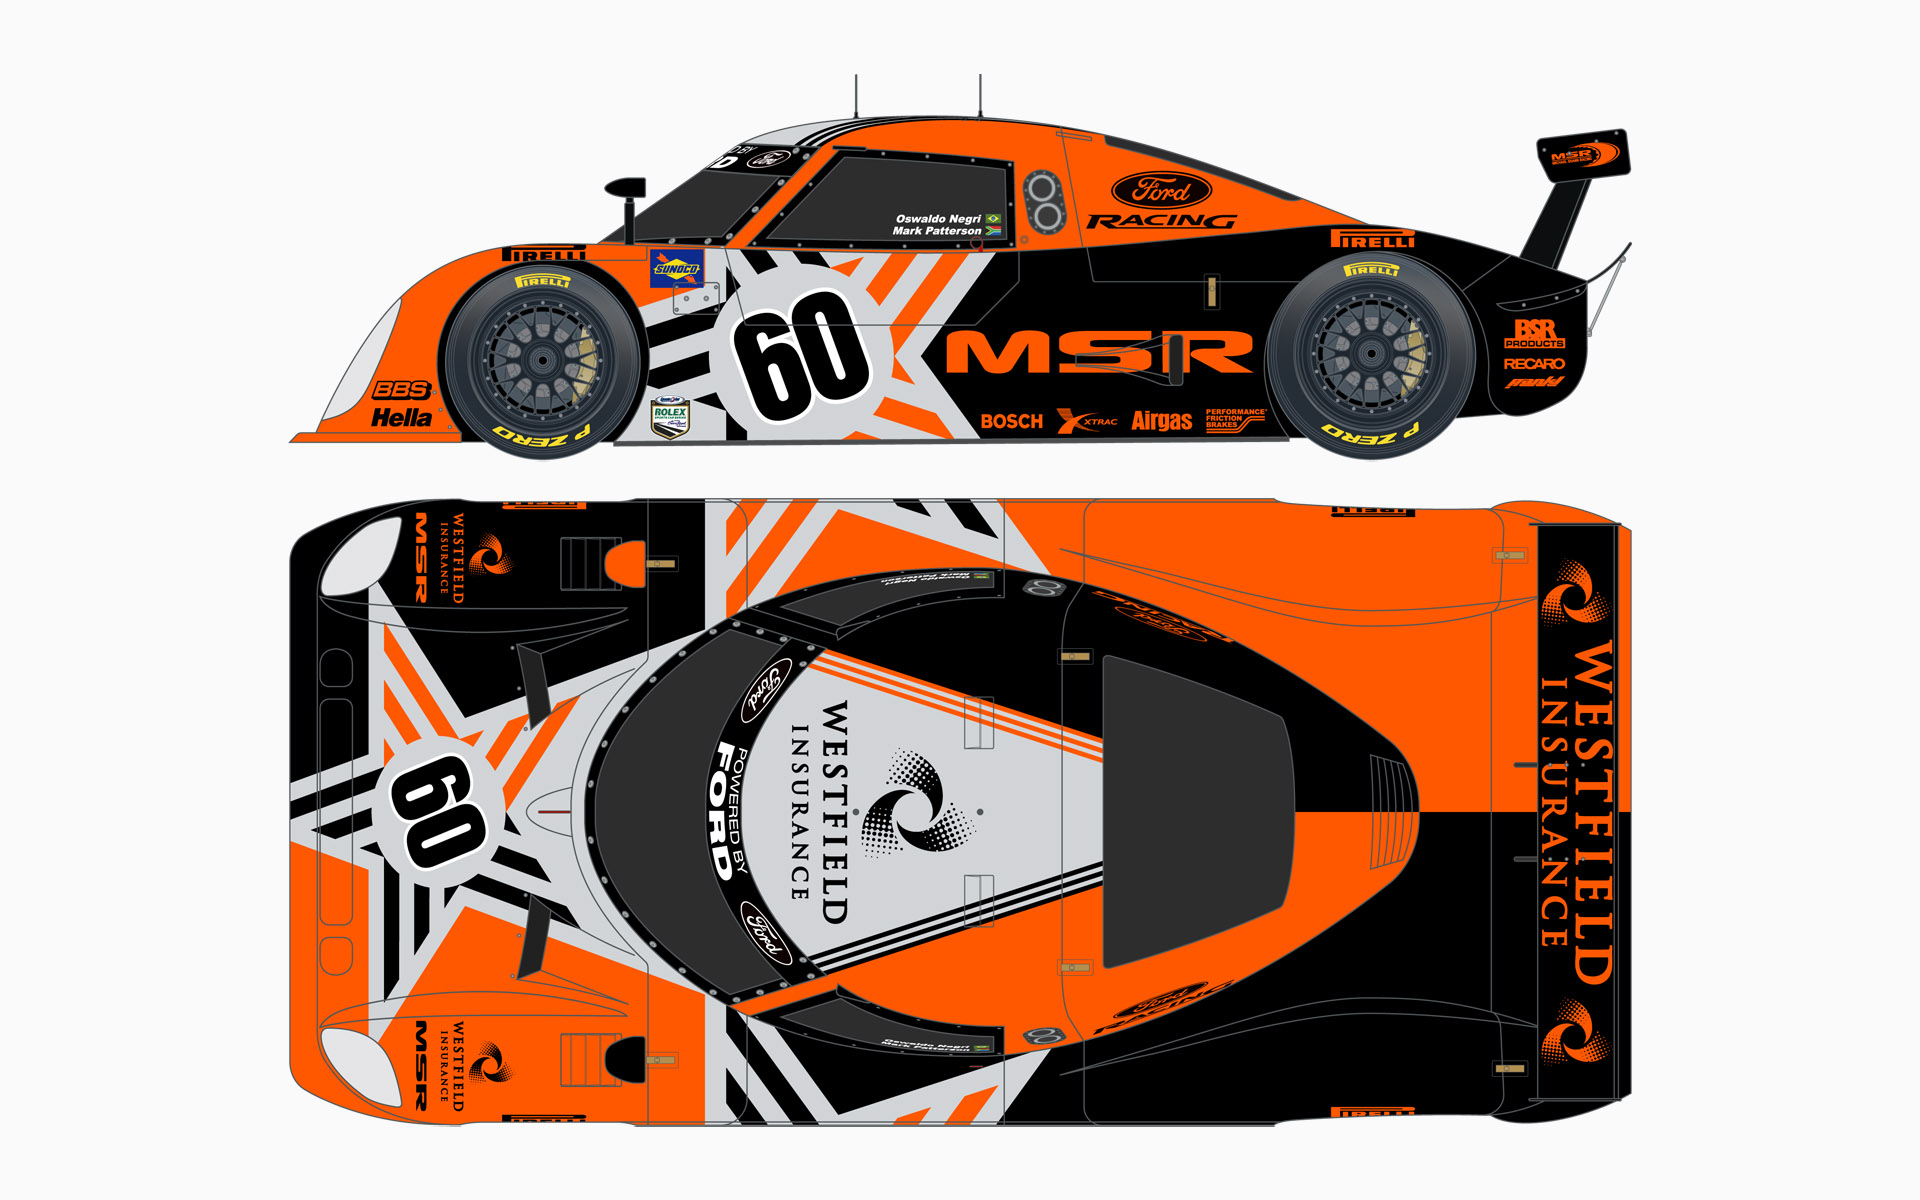 2006 Michael Shank Racing Riley MKXI Daytona Prototype Livery Elevations